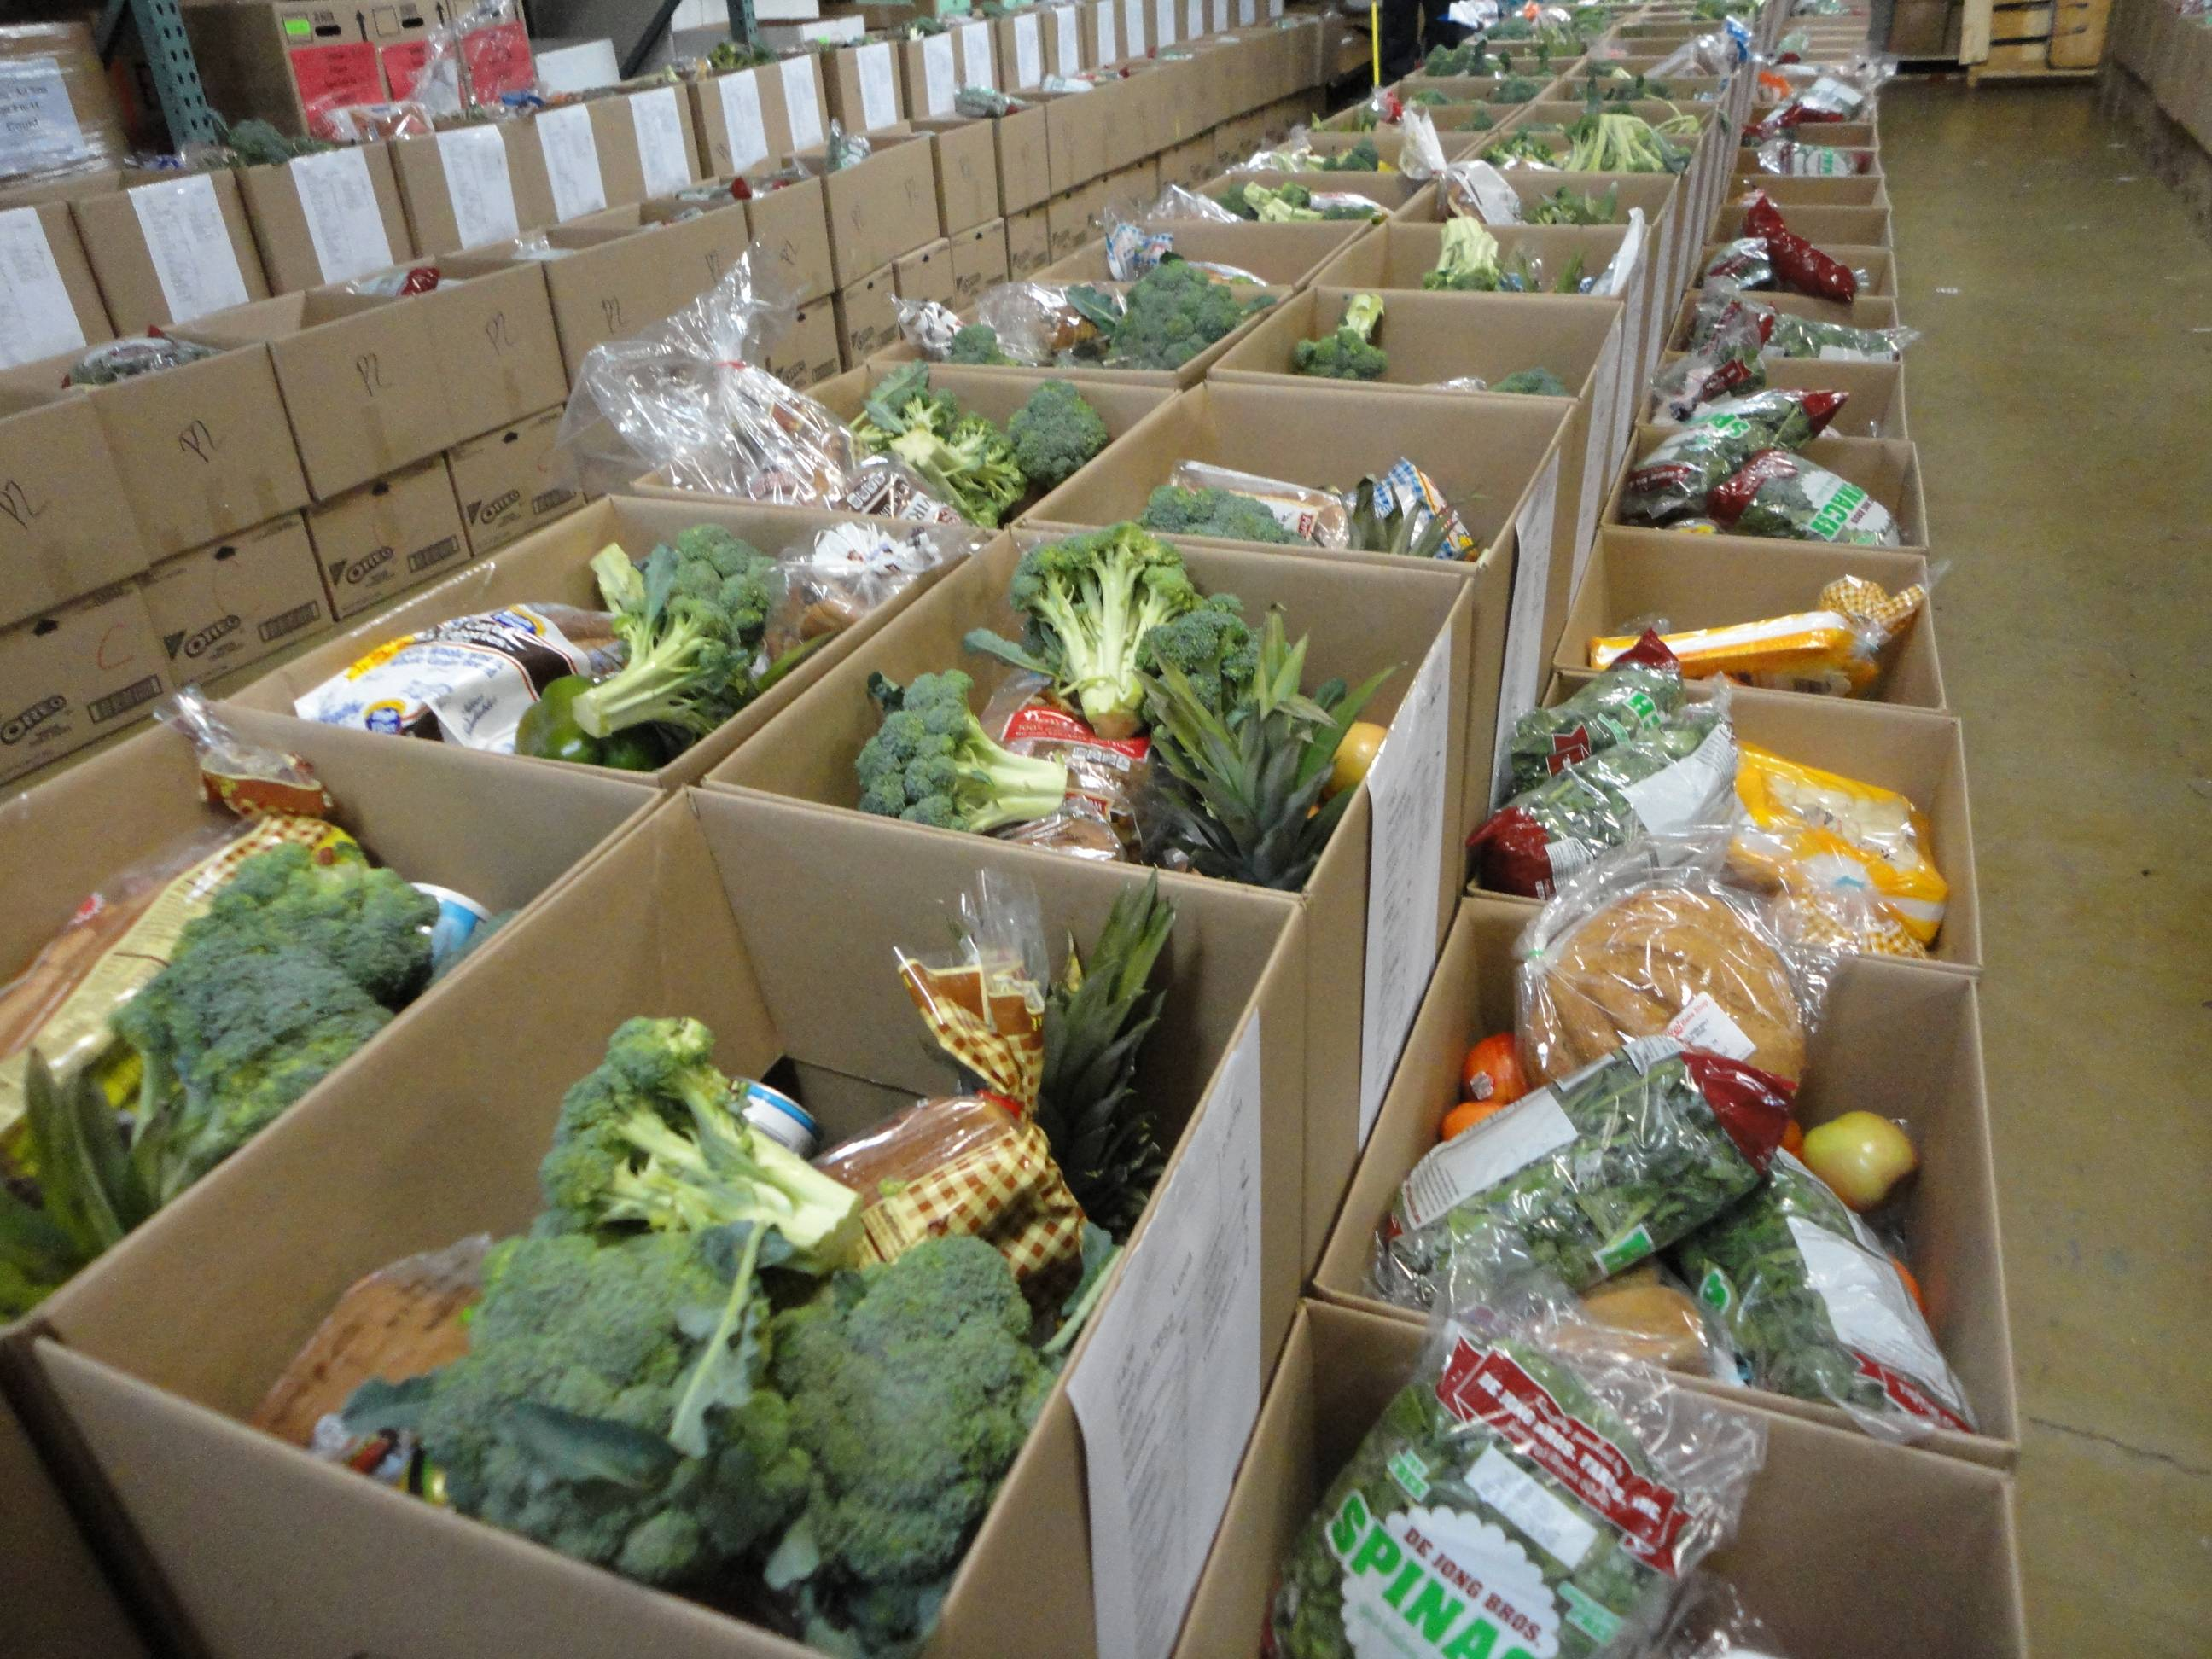 Fresh produce arranged to be distributed to needy families through the Humanitarian Service Project's Feed the Kids program on July 9.